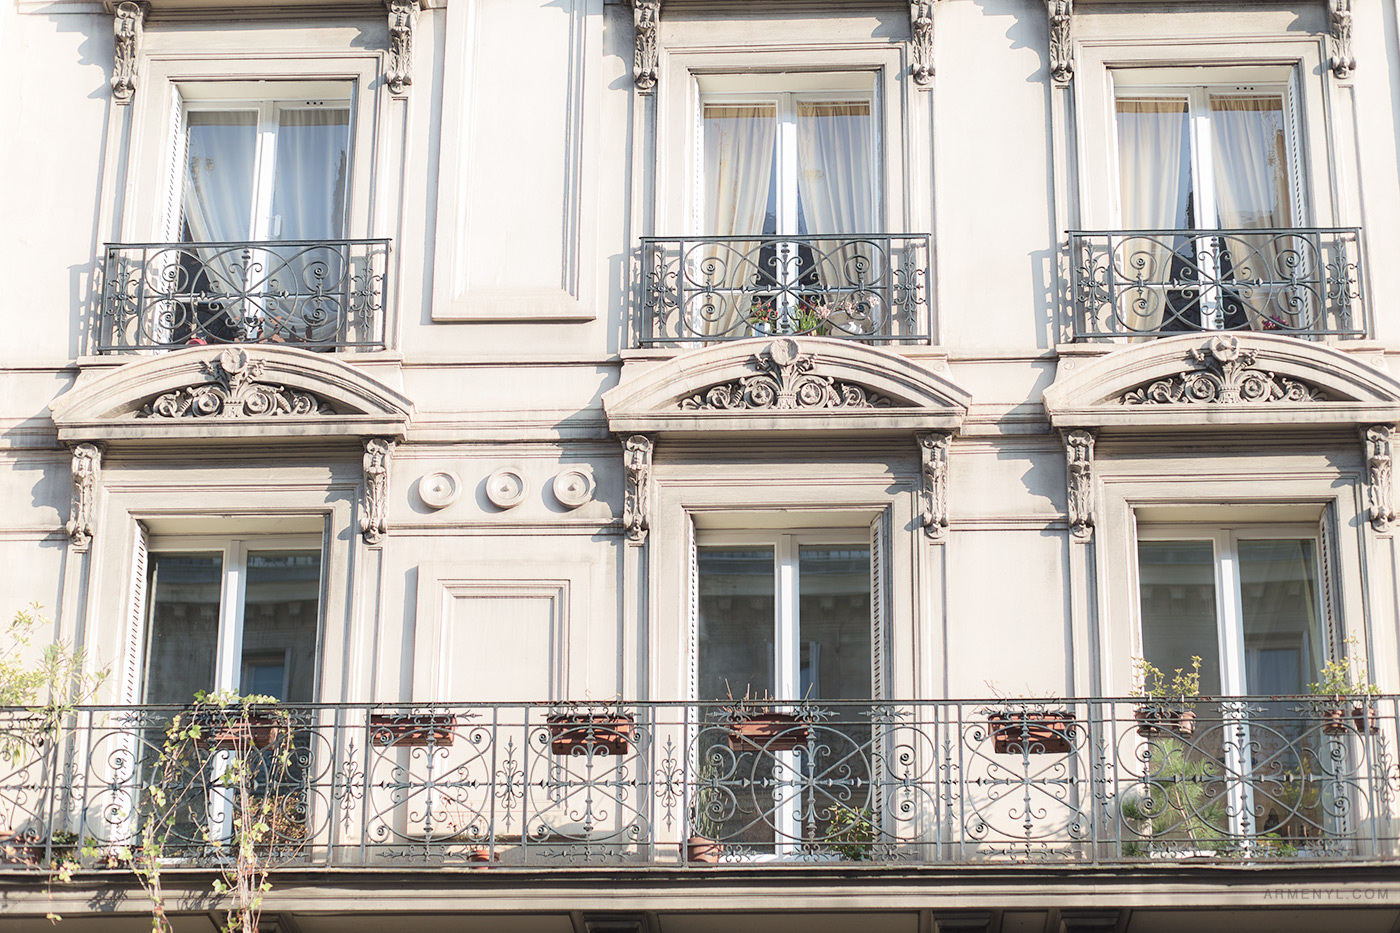 Parisian-windows-Sunny-day-in-Paris,-France-photographed-by-Armenyl.com